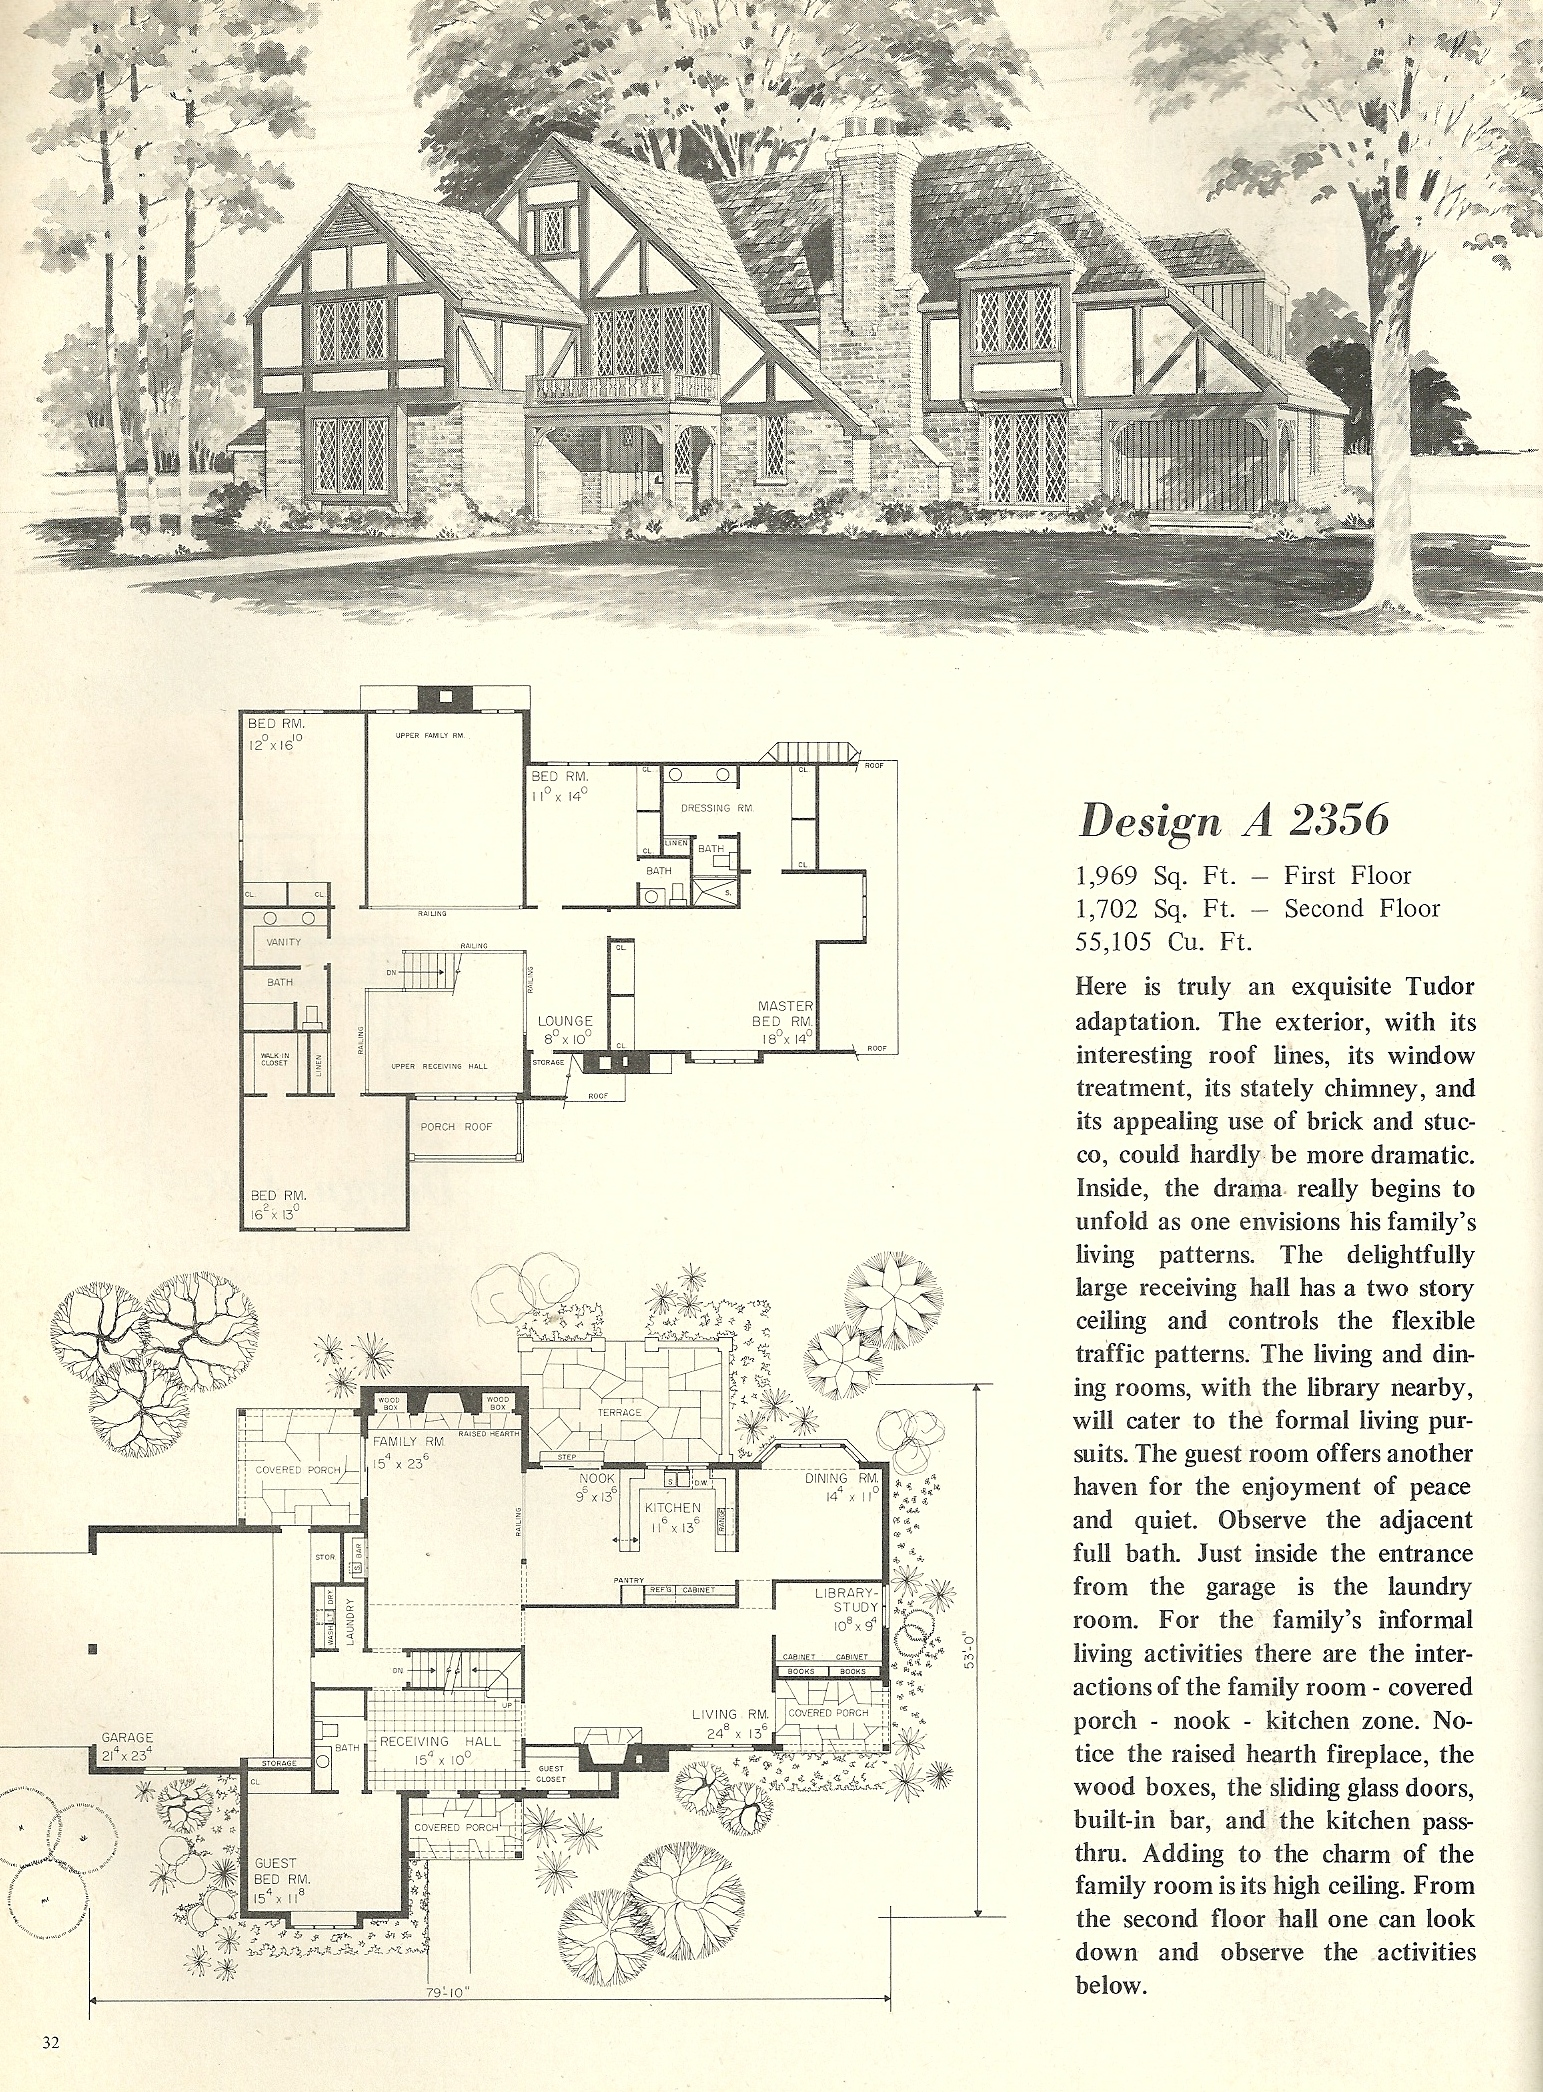 Vintage house plans 2356 antique alter ego for Vintage floor plans